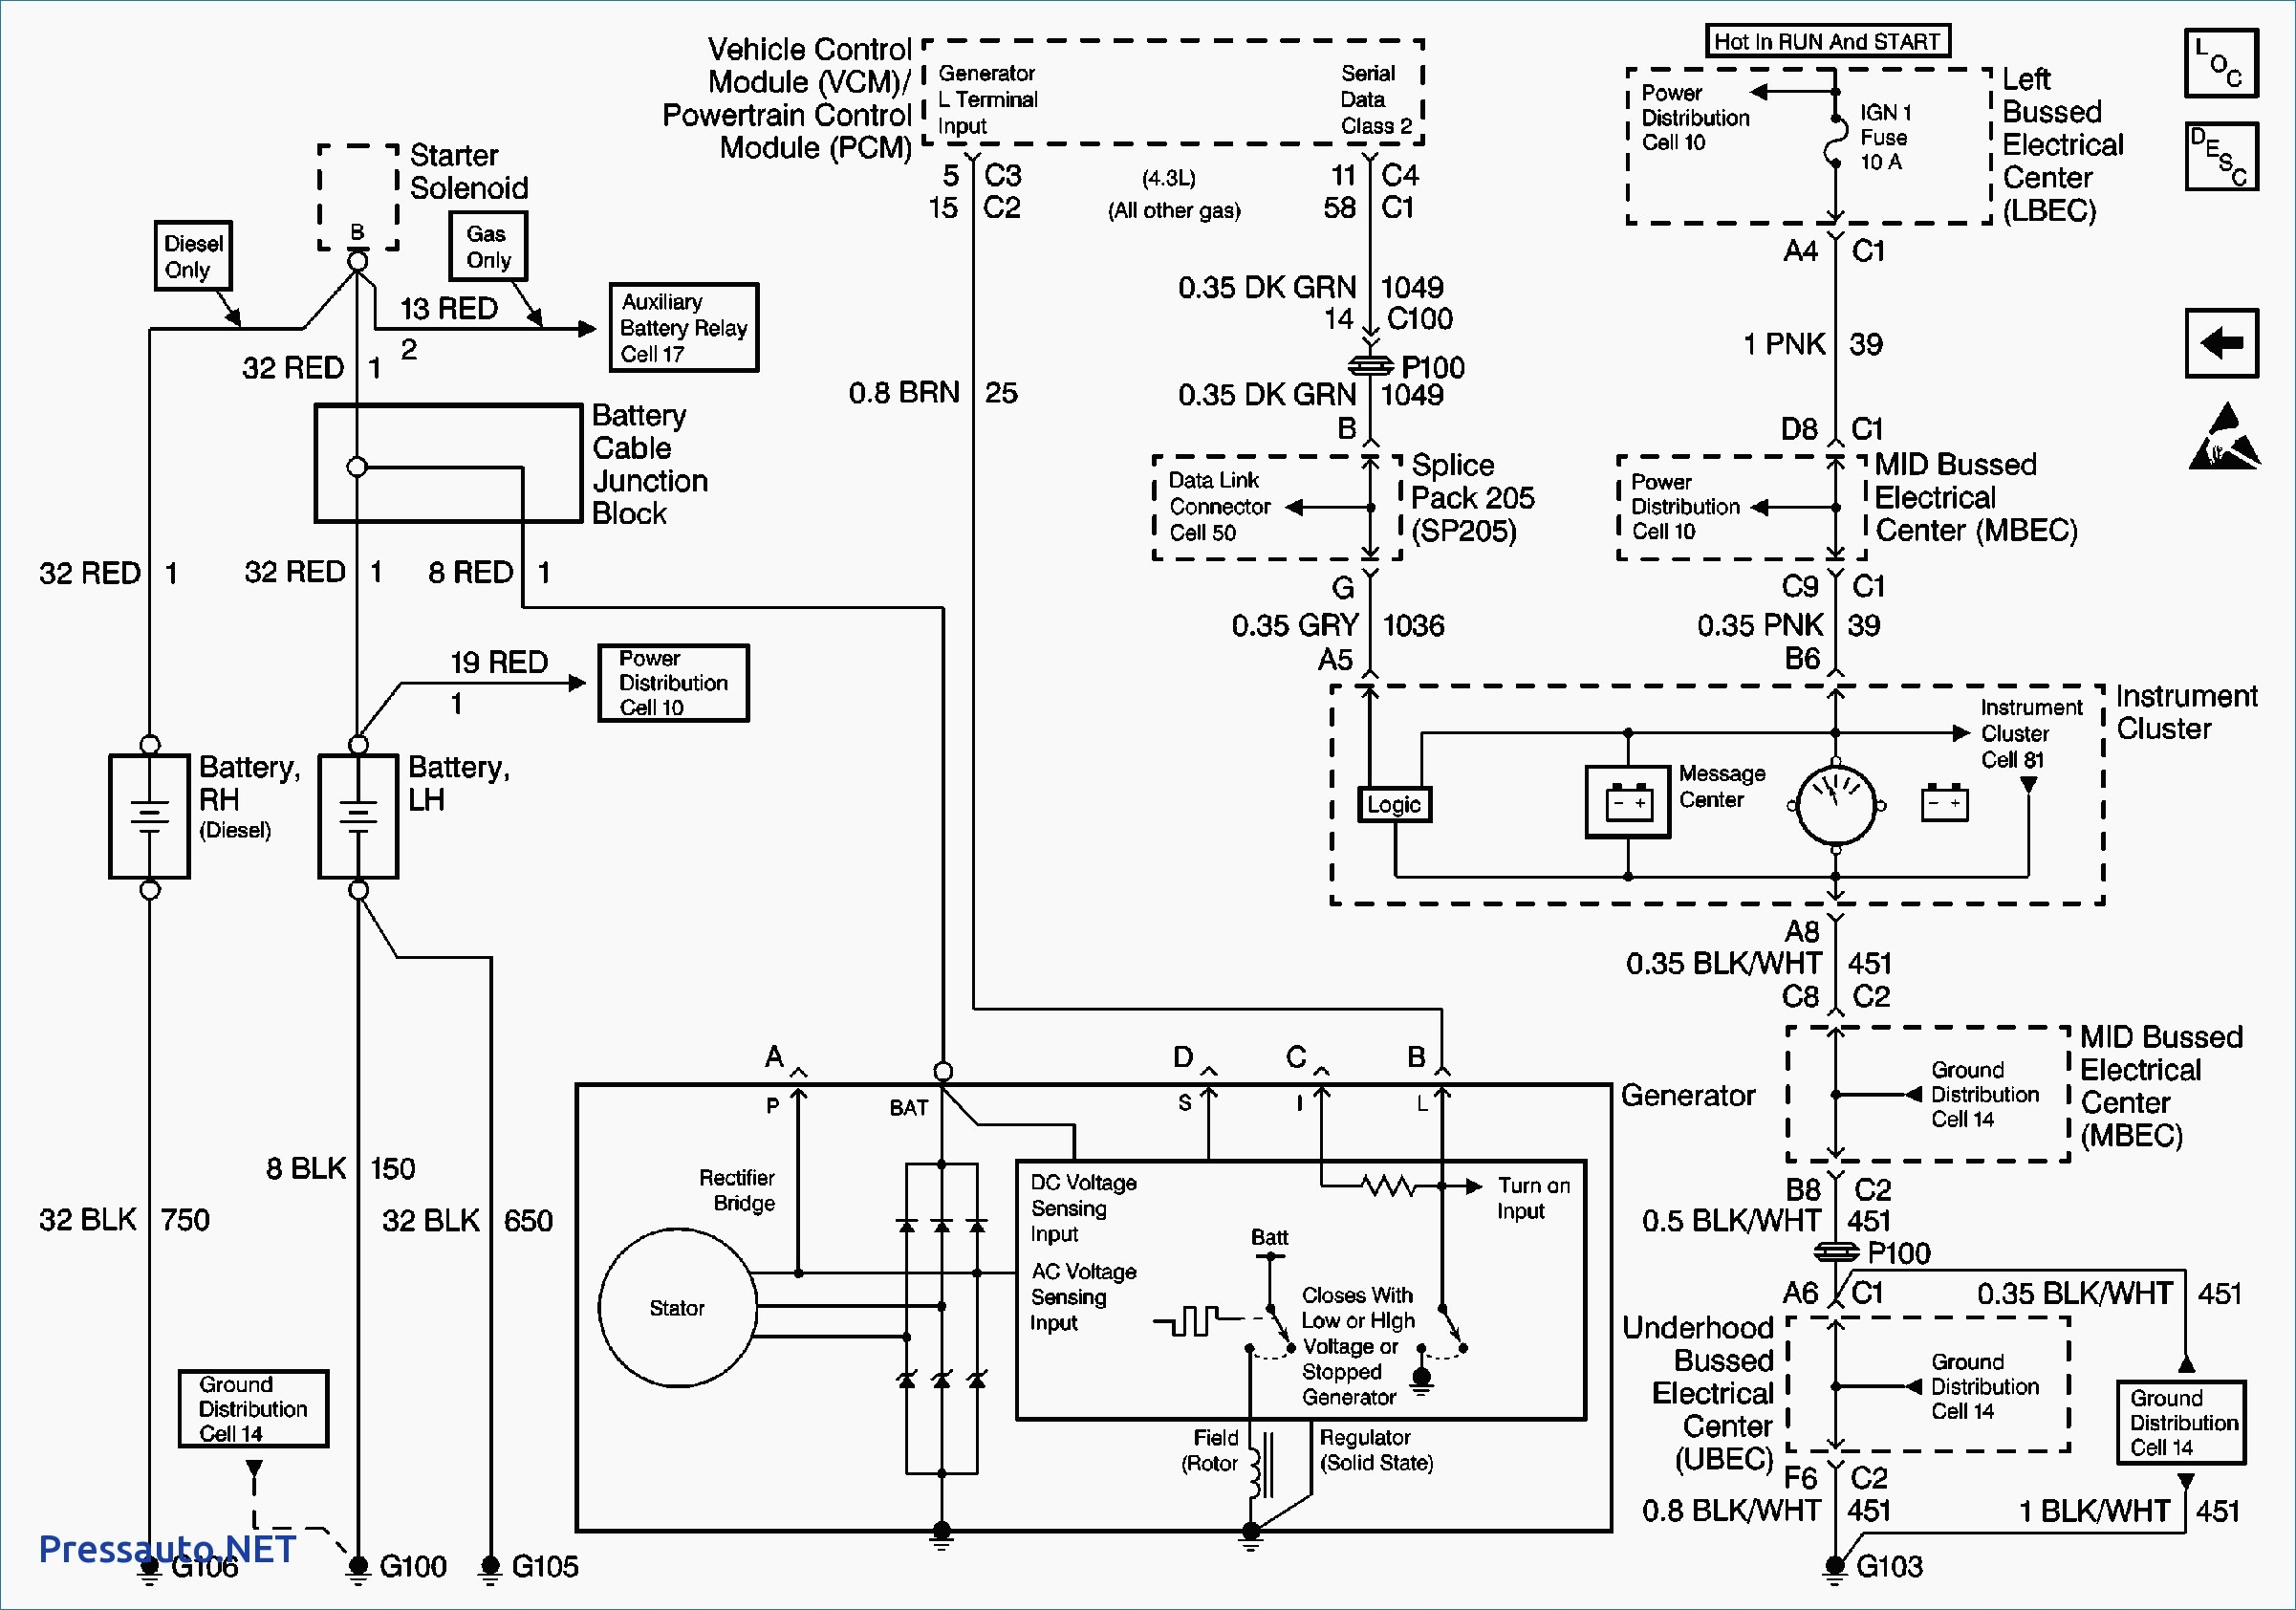 2002 Chevy Silverado Wiring Diagram 2003 Chevy Silverado Wiring Diagram  Pressauto Net with Wiring Diagrams Of